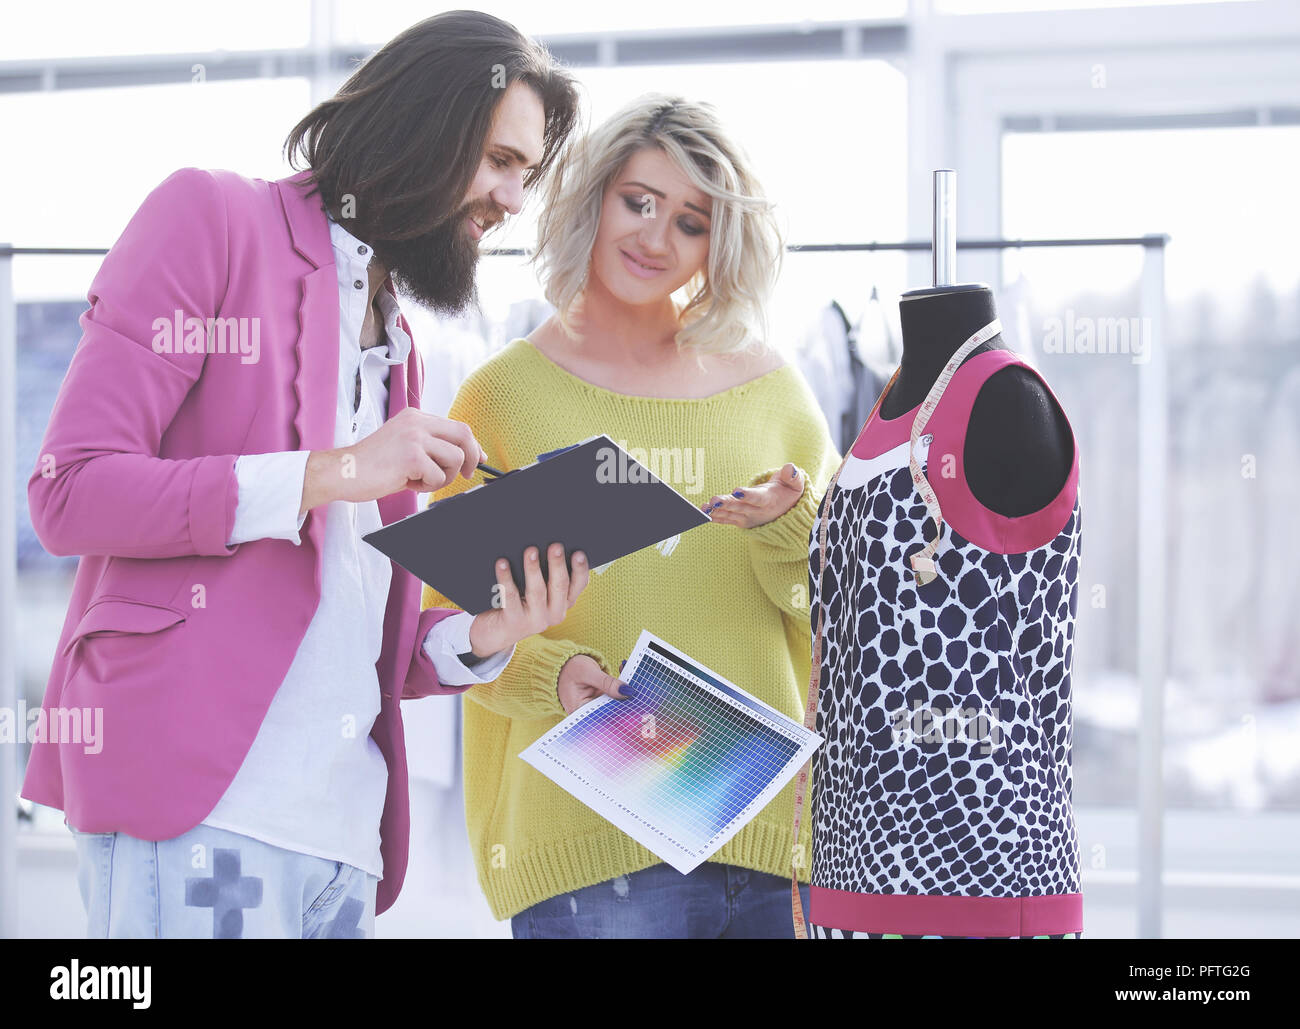 Two fashion designers discuss the color of the new clothing collection - Stock Image